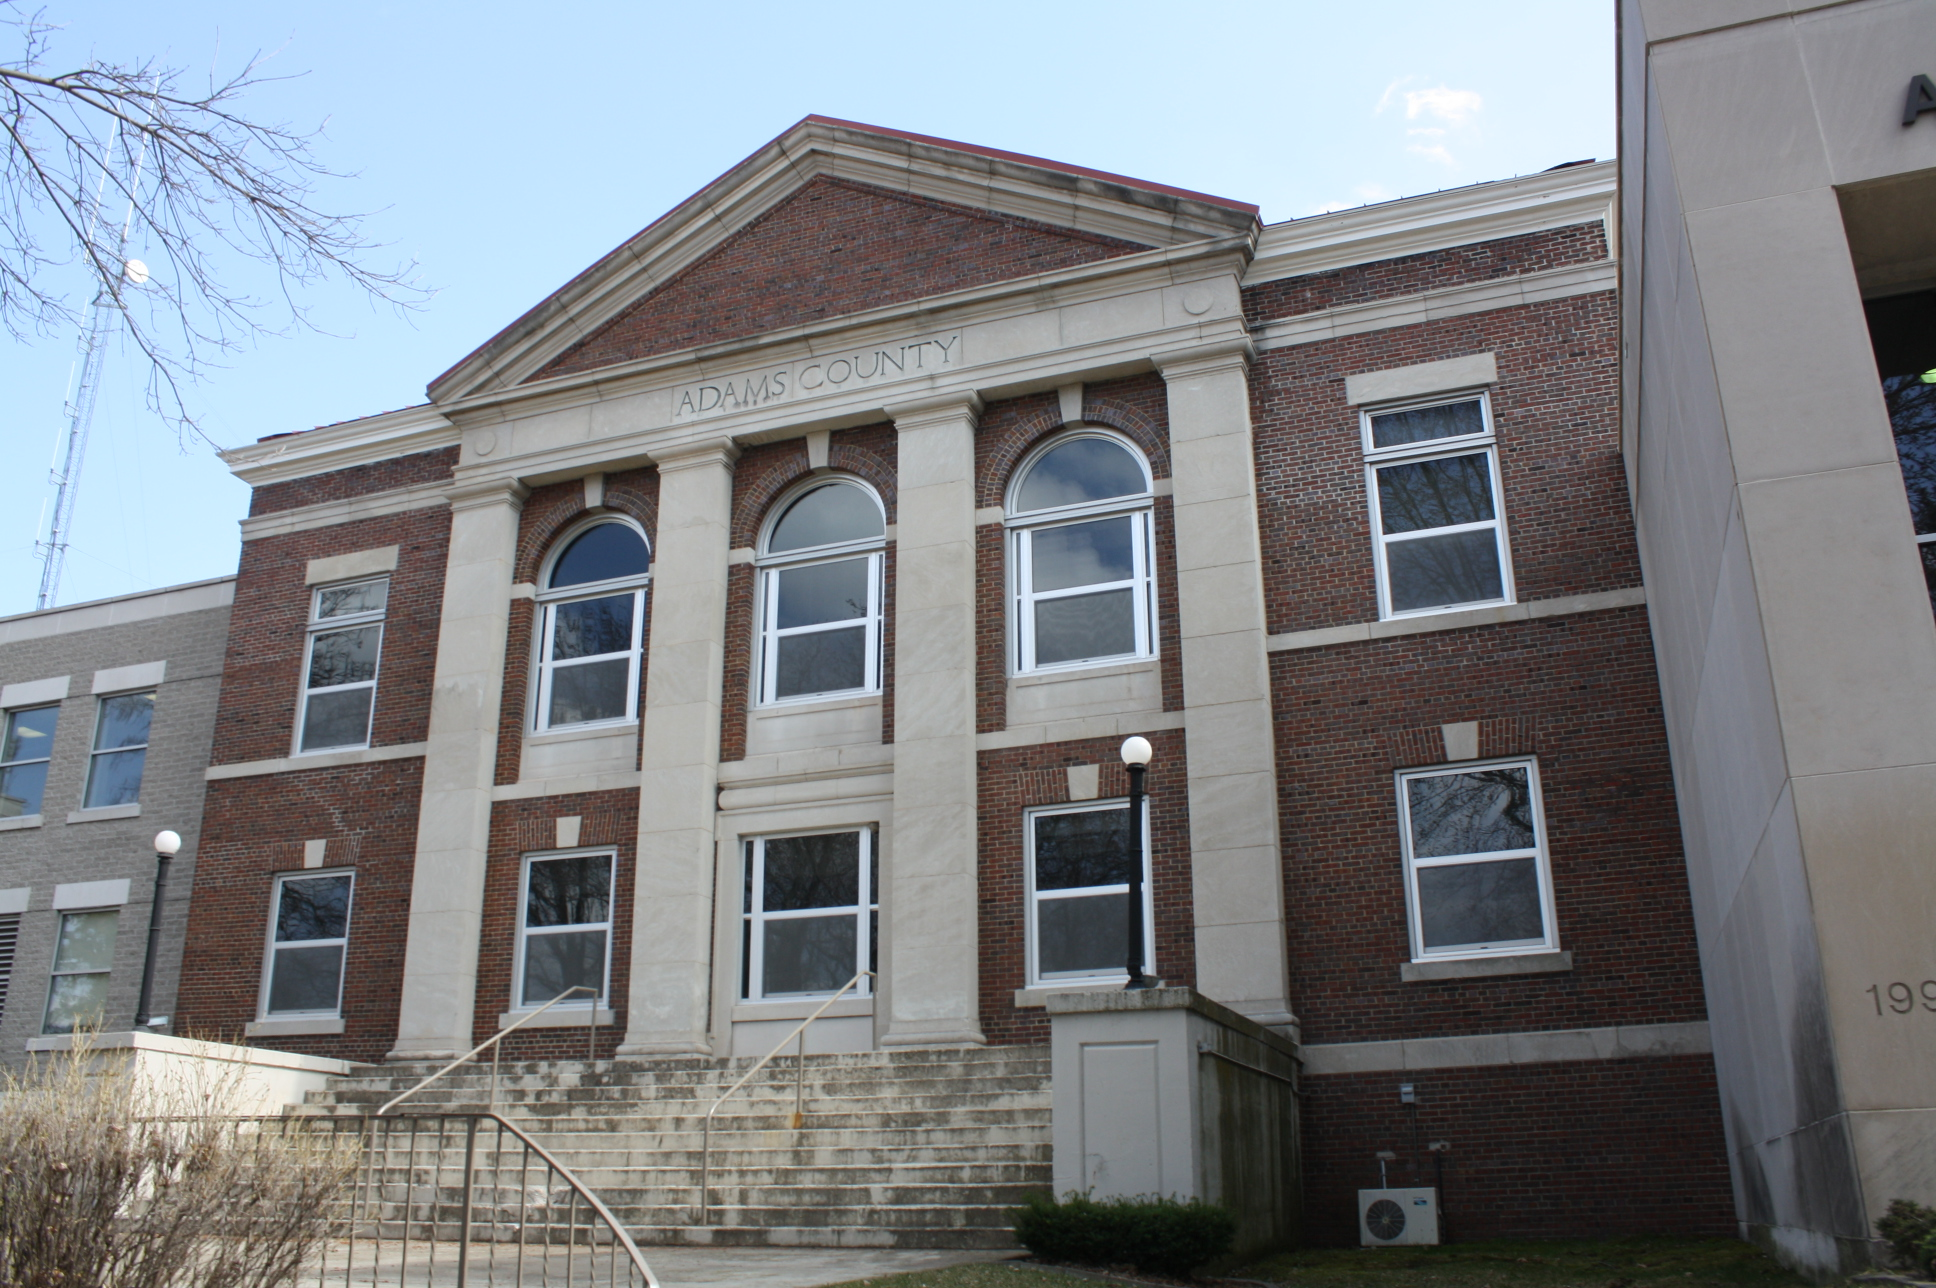 Adams County Courthouse (Wisconsin)